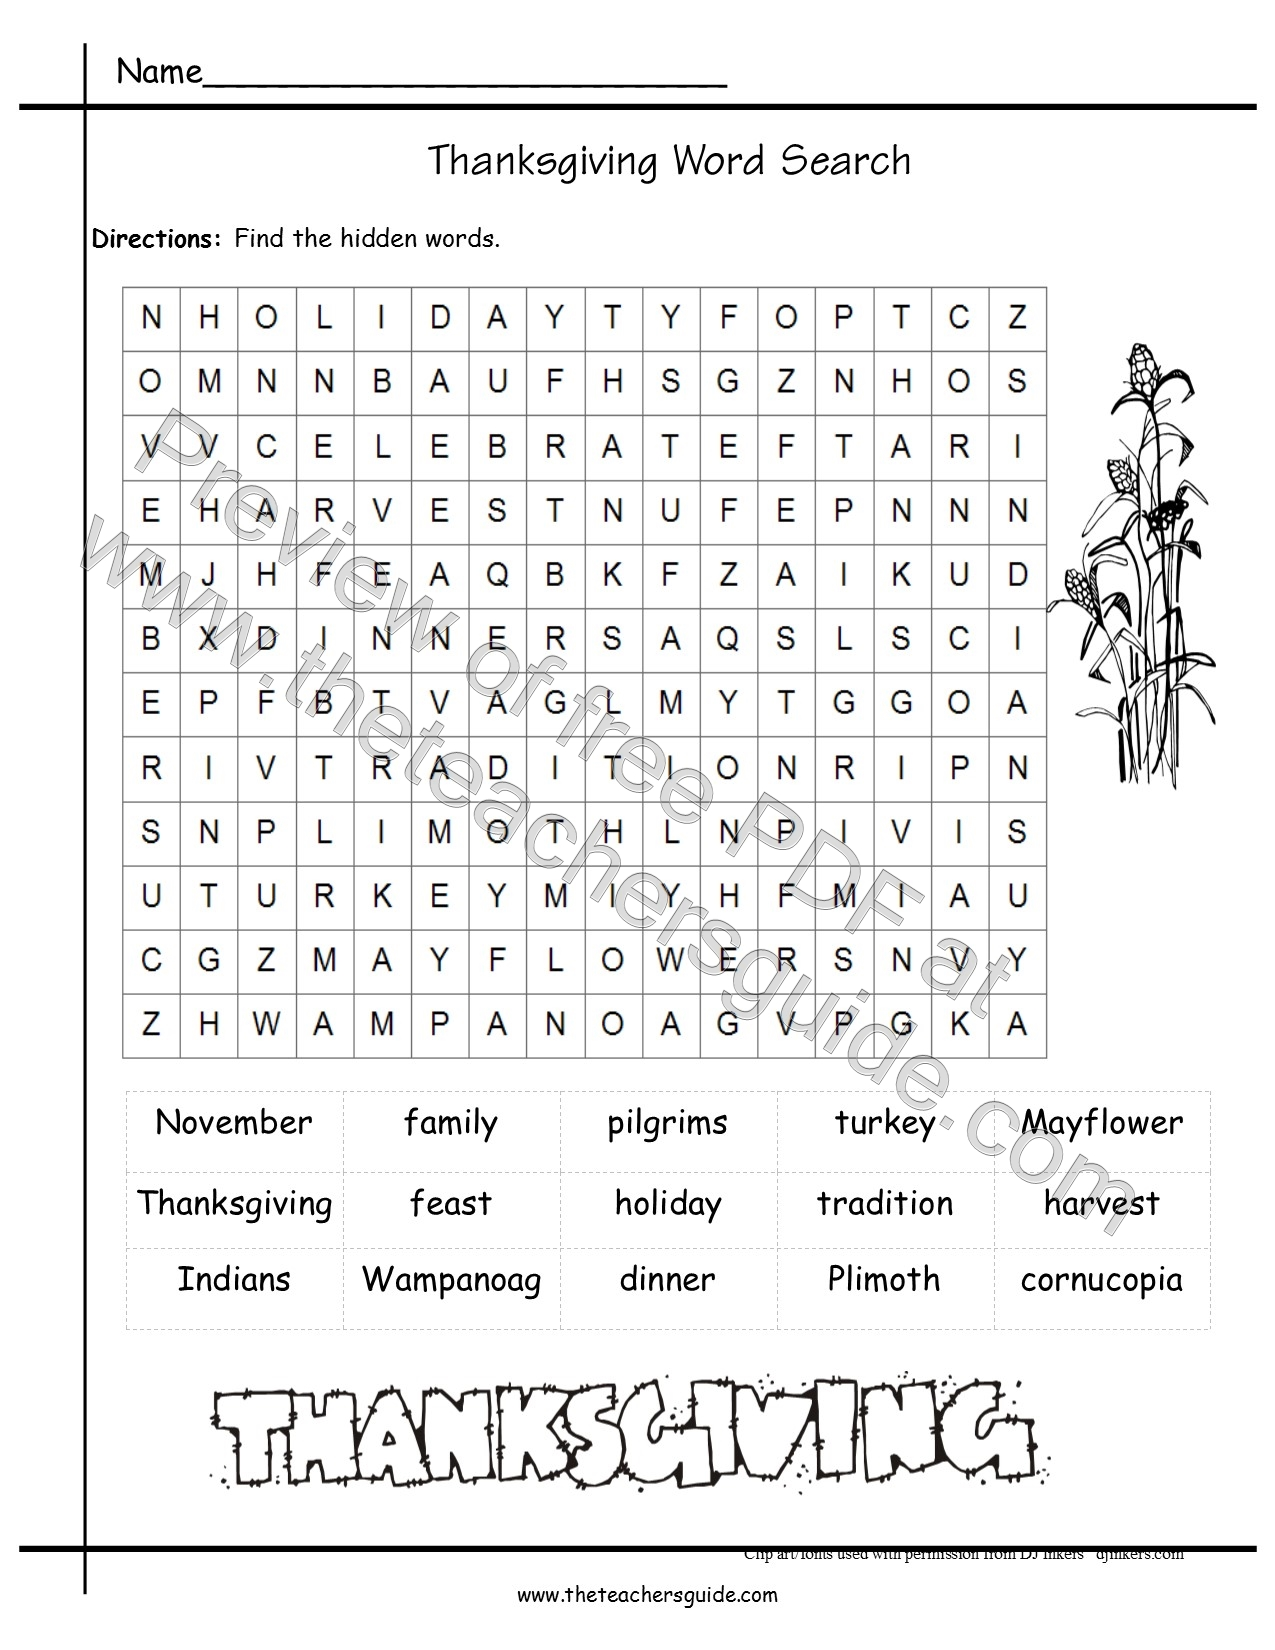 Thanksgiving Printouts From The Teacher S Guide